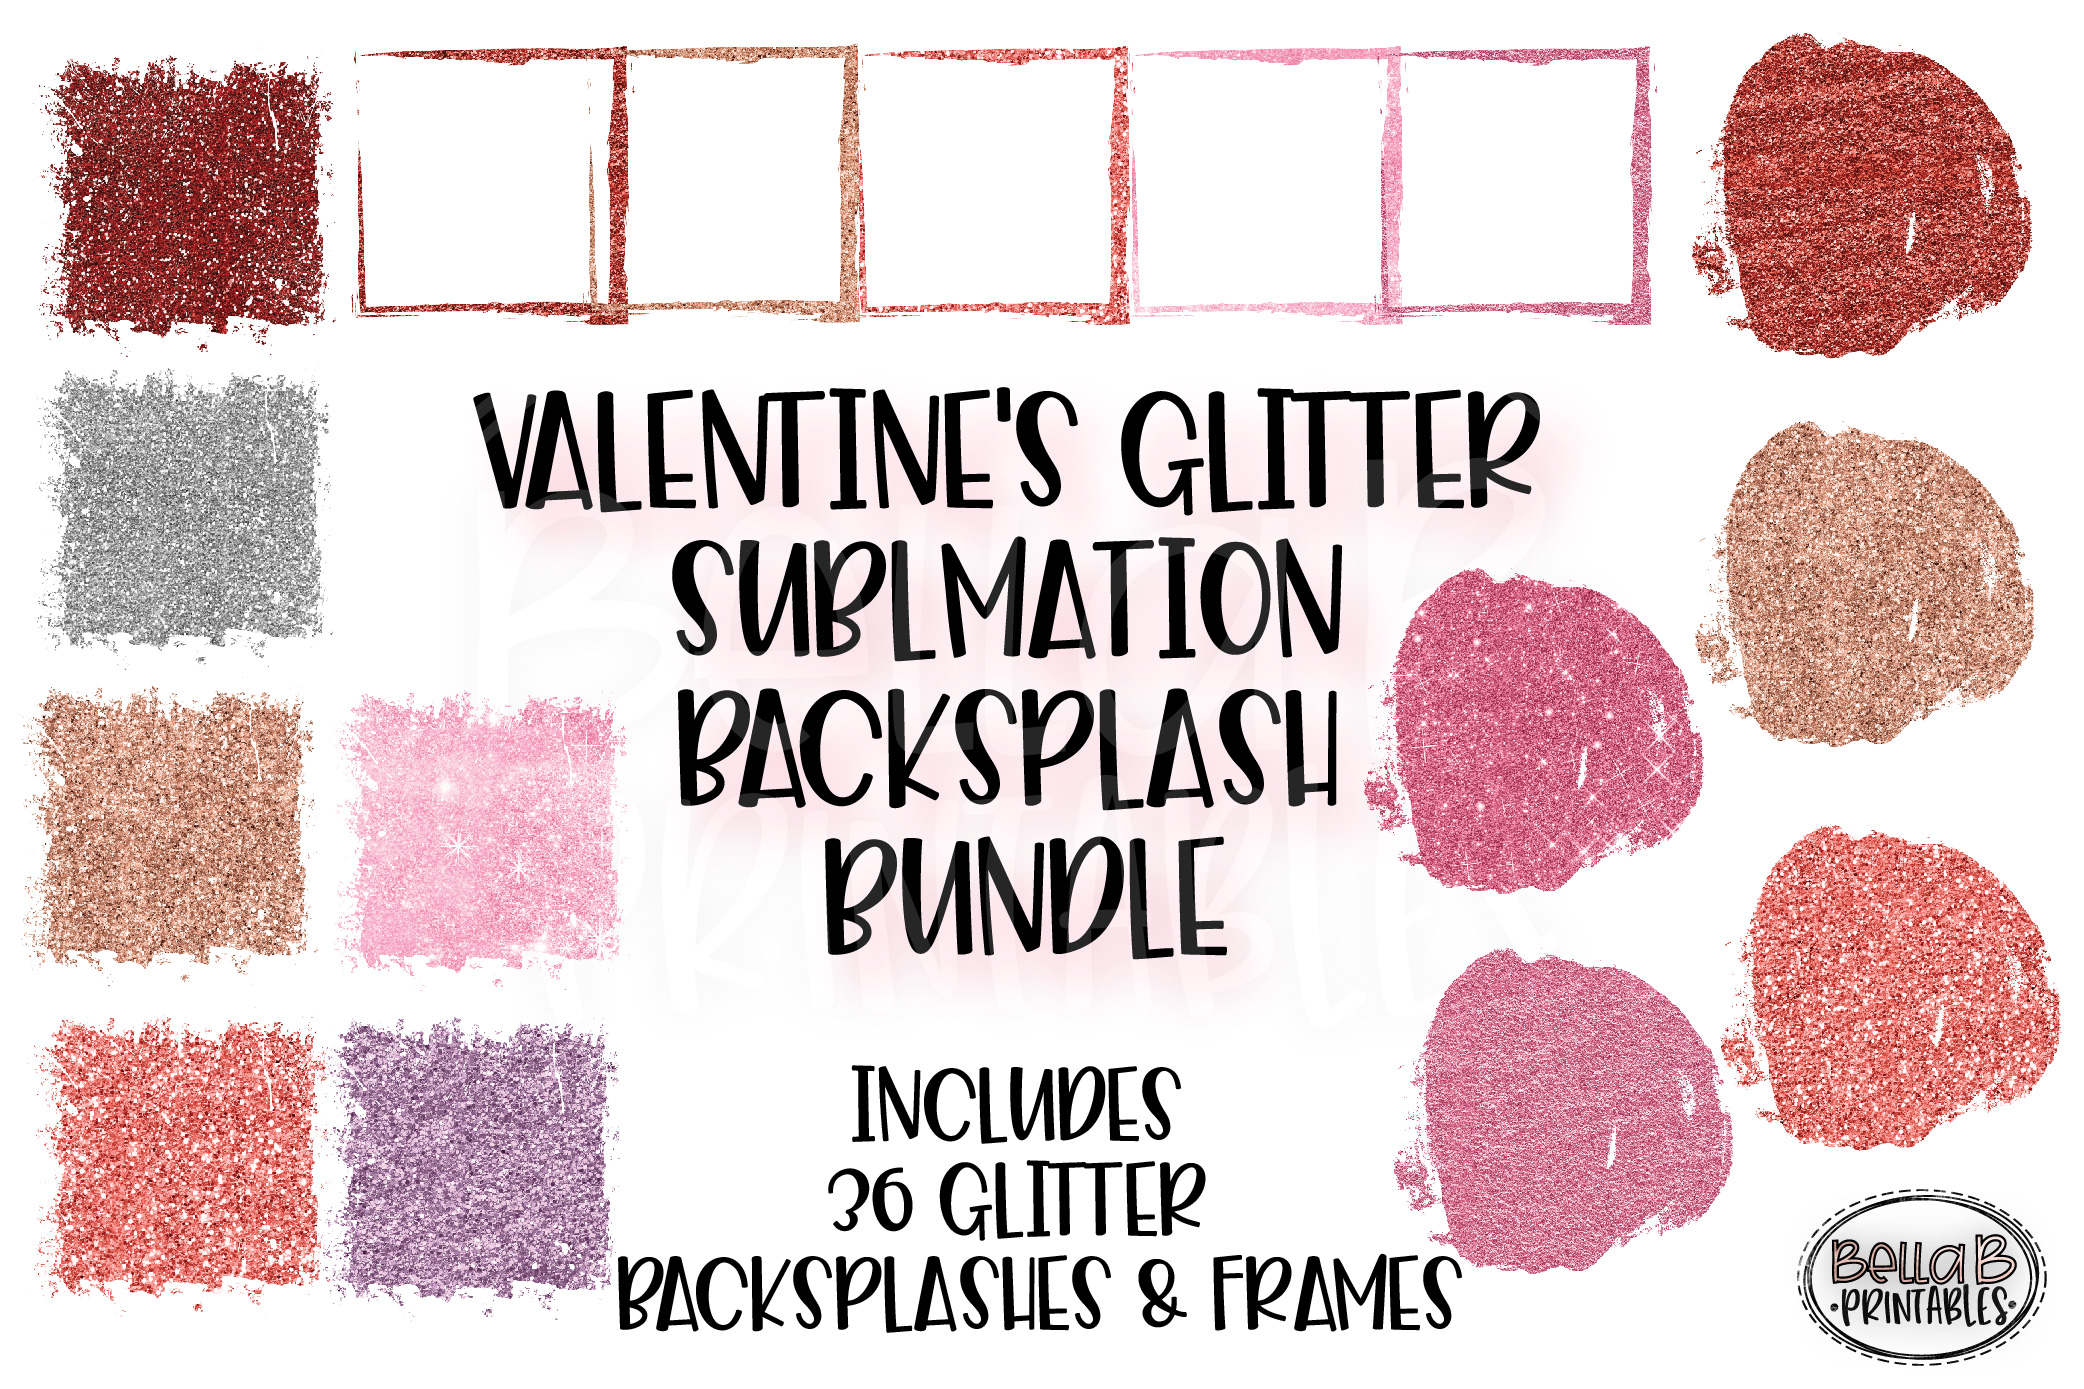 Valentines Glitter Sublimation Background Bundle, Frames example image 1